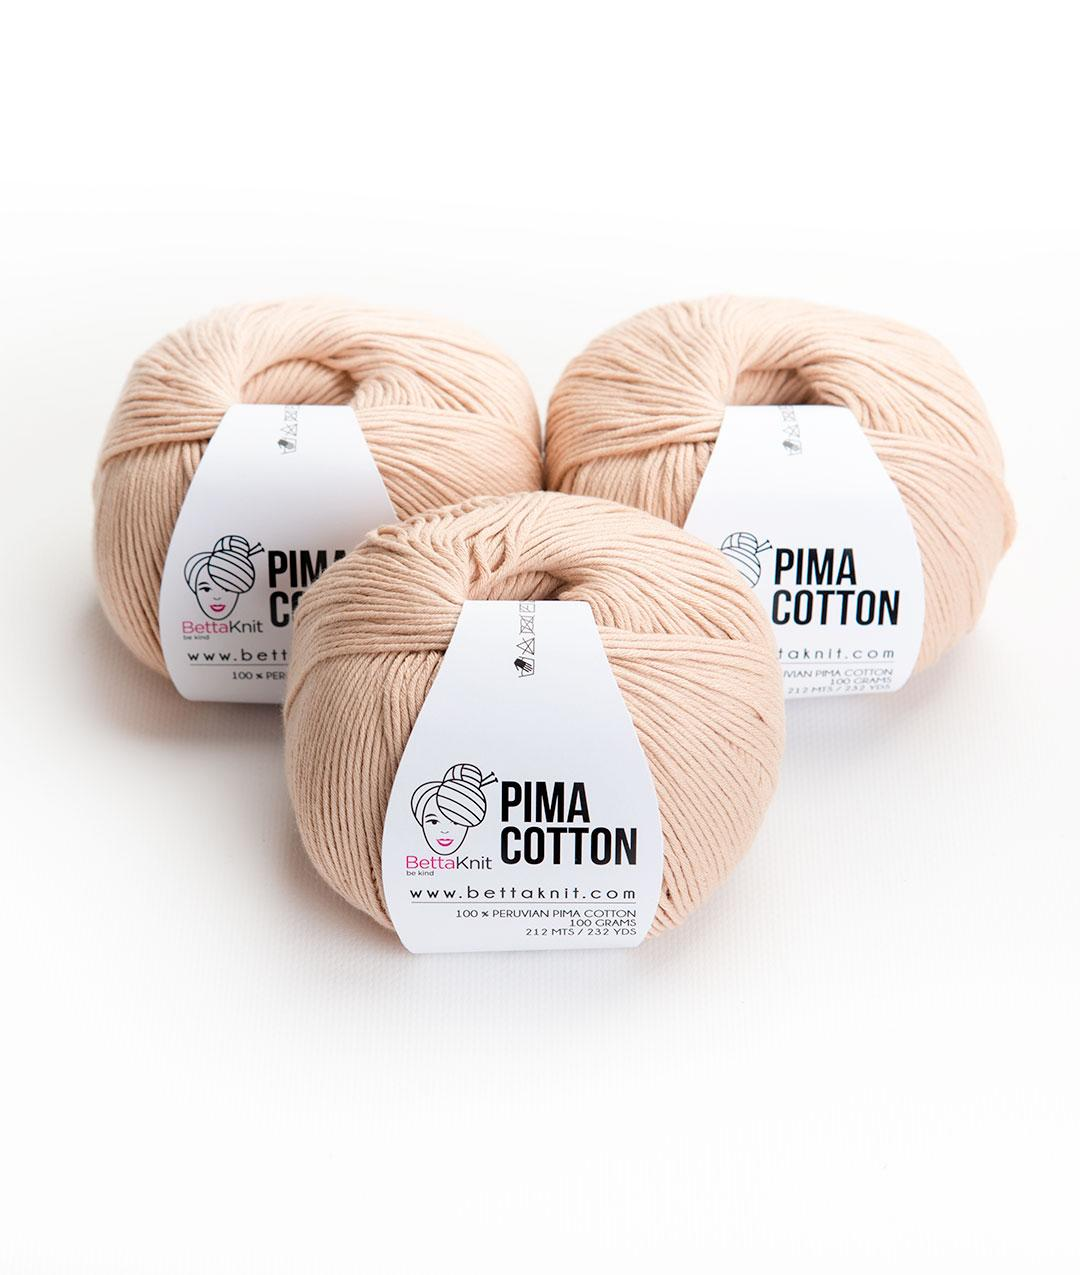 Yarn boxes without Needles  - Pack of Yarn - Pima Cotton Pack - 3 balls - 1